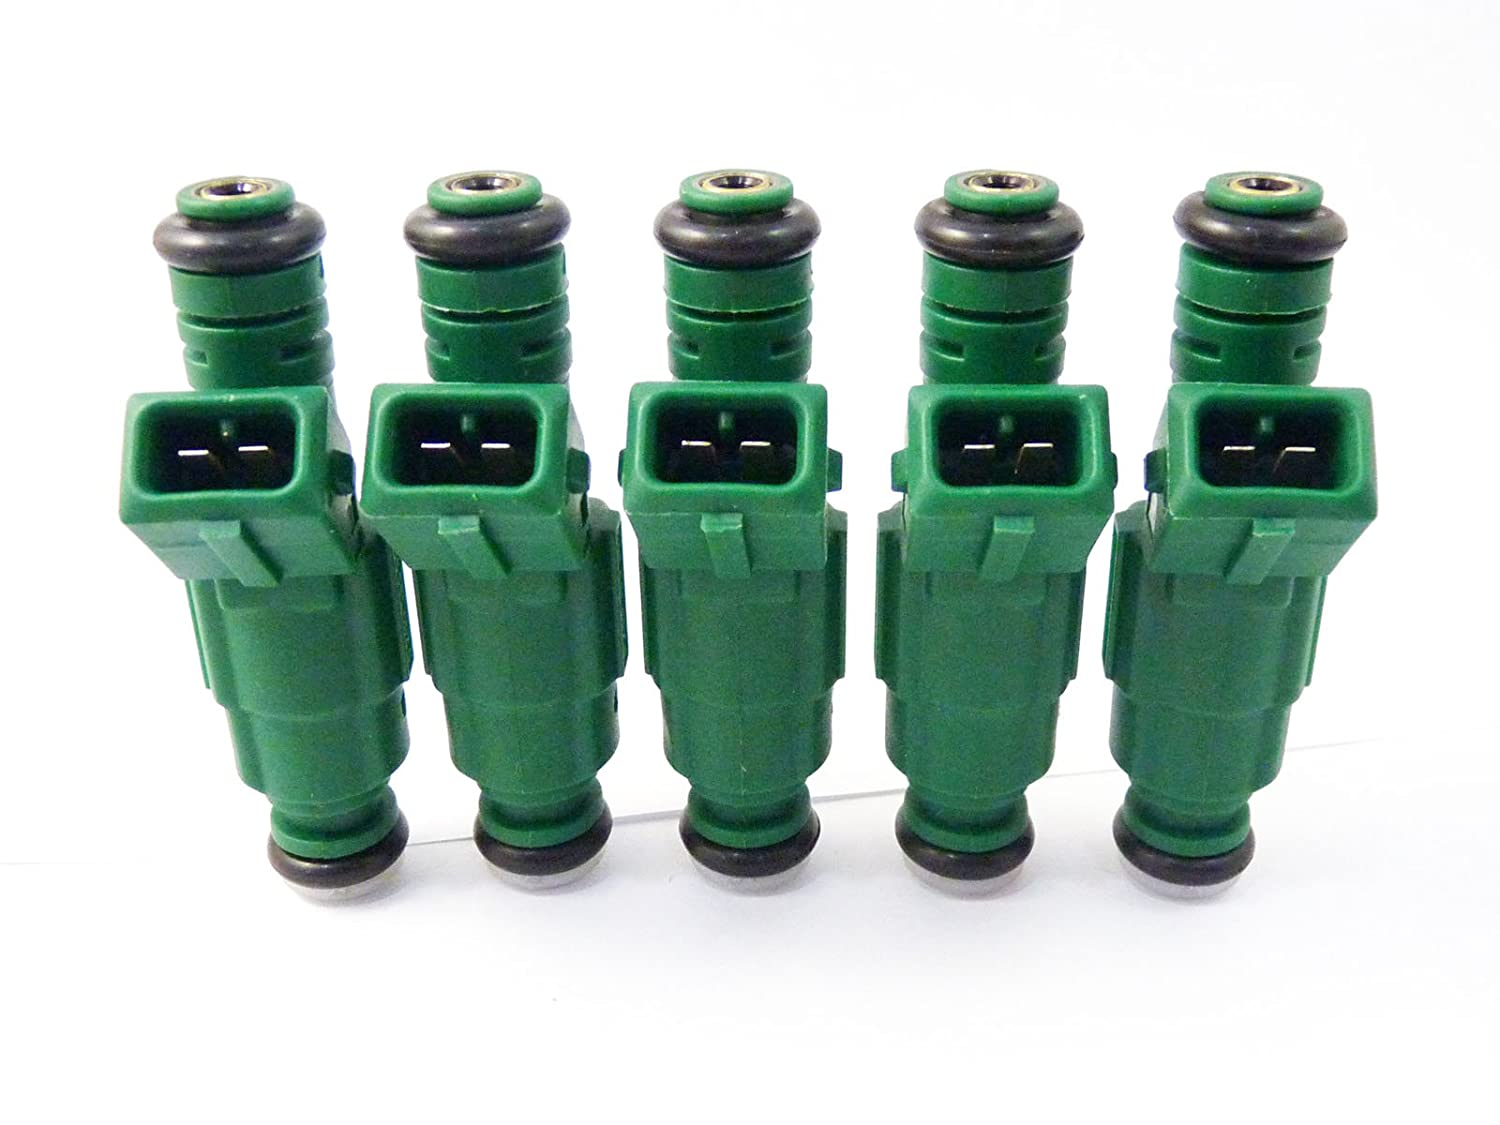 5 PCS Green Giant Fuel Injector 0280155968 Fit For Focus 2000 2001 2002 2003 2004 2005 2006 2007 2008 2009 2010 2011 2012 2013 NEW Rejog4 Auto